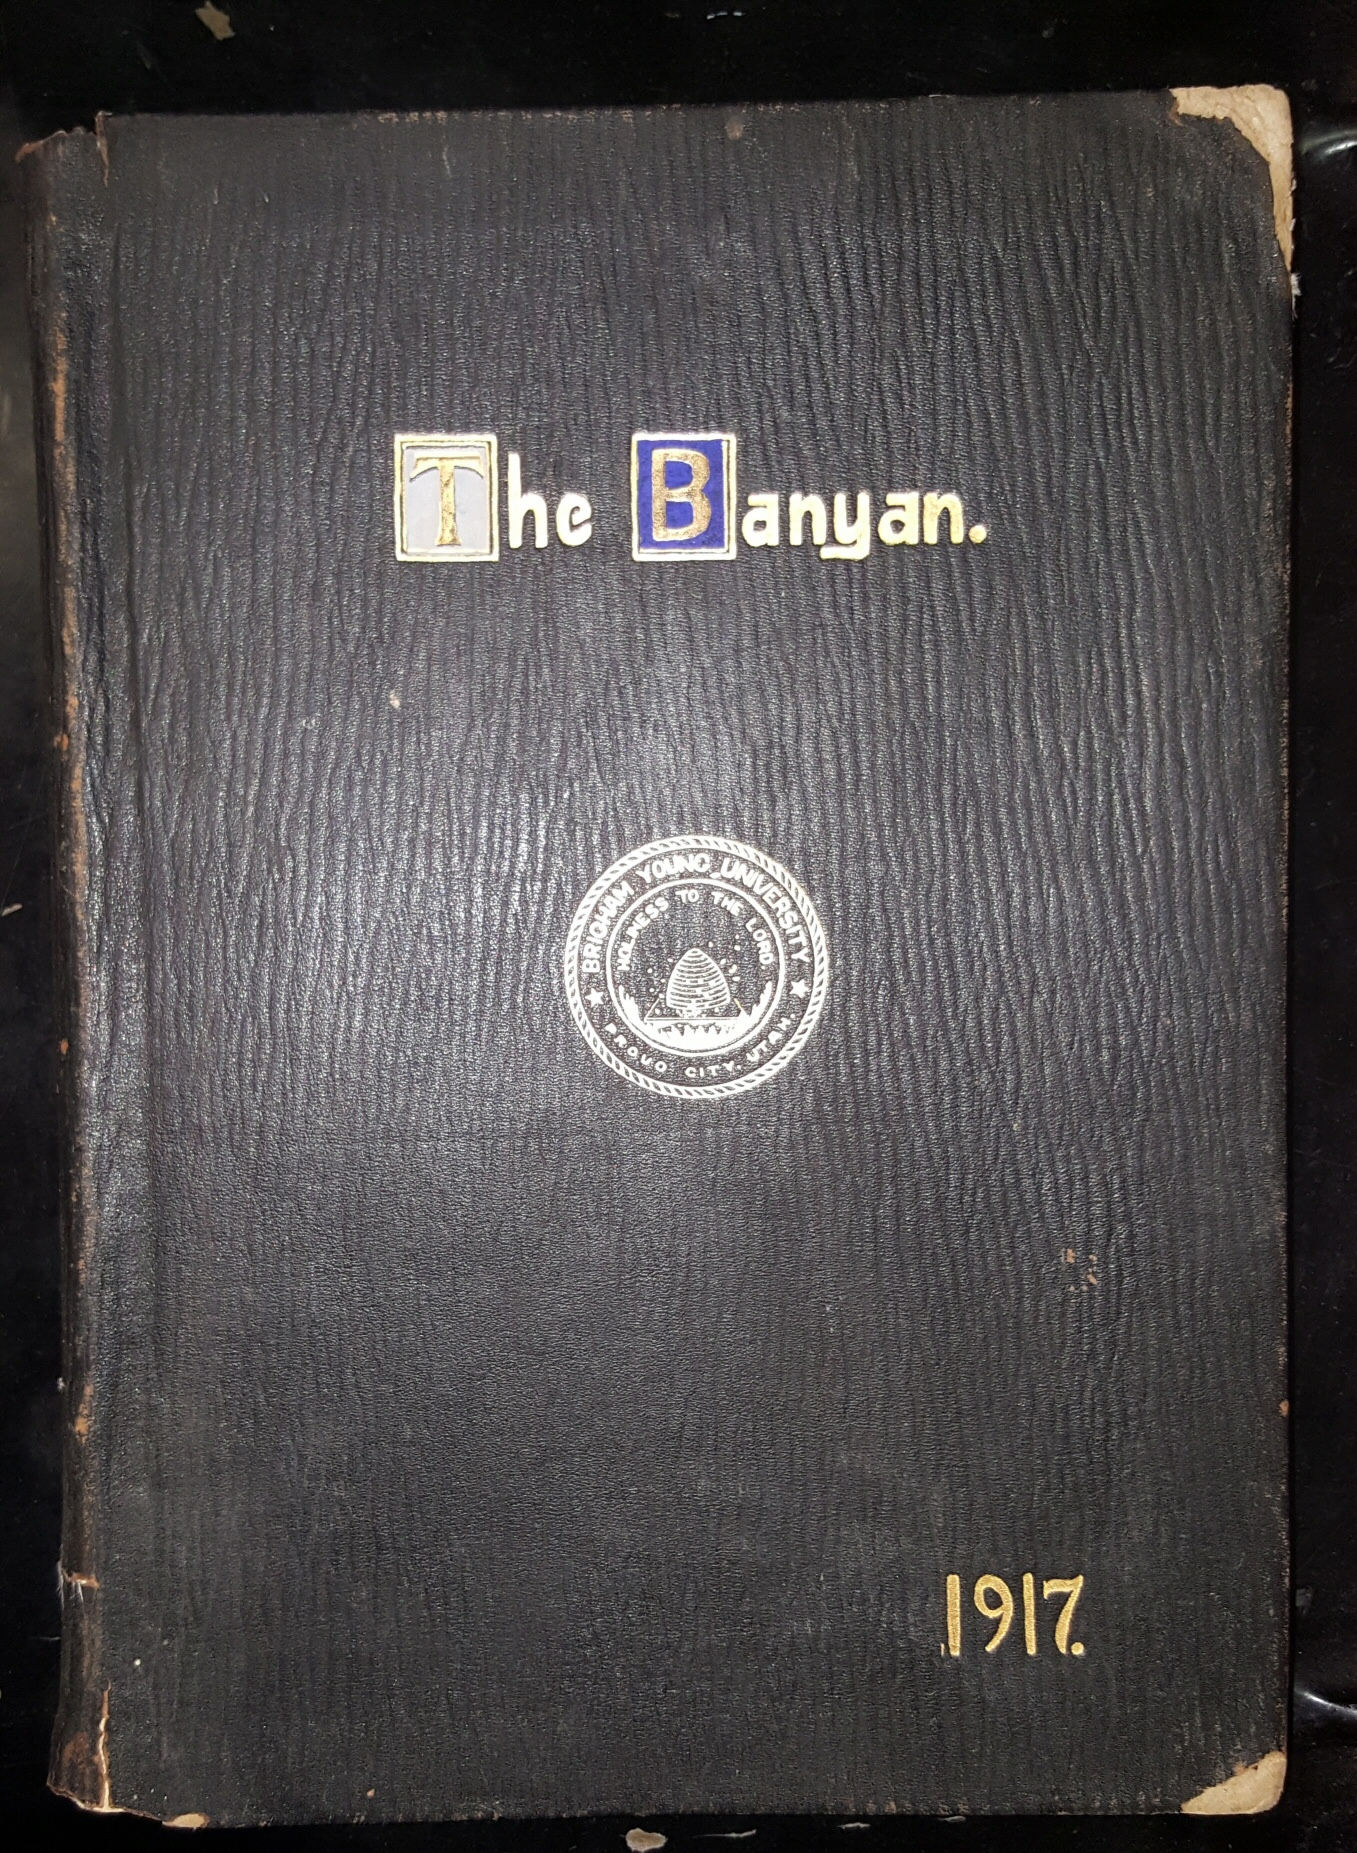 BANYAN - 1917 BRIGHAM YOUNG UNIVERSITY -, Associated Student Body Of BYU